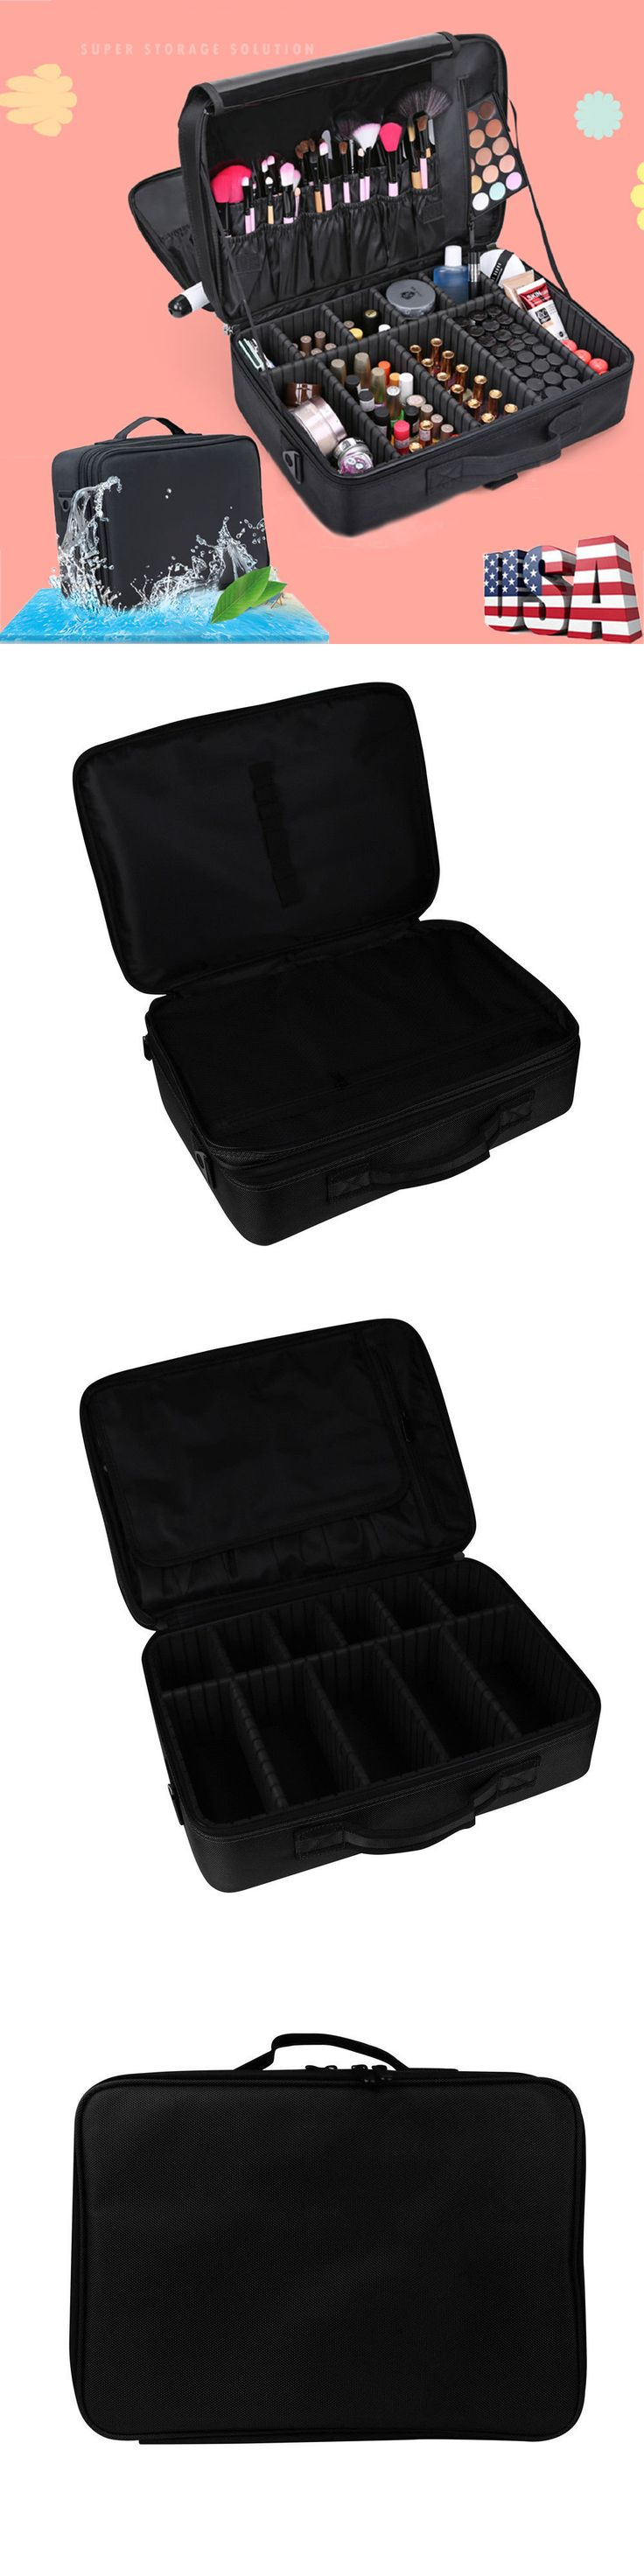 Makeup Bags and Cases: Professional Makeup Beauty Bag Cosmetic Case Storage Handle Organizer Artist Box -> BUY IT NOW ONLY: $37.77 on eBay!